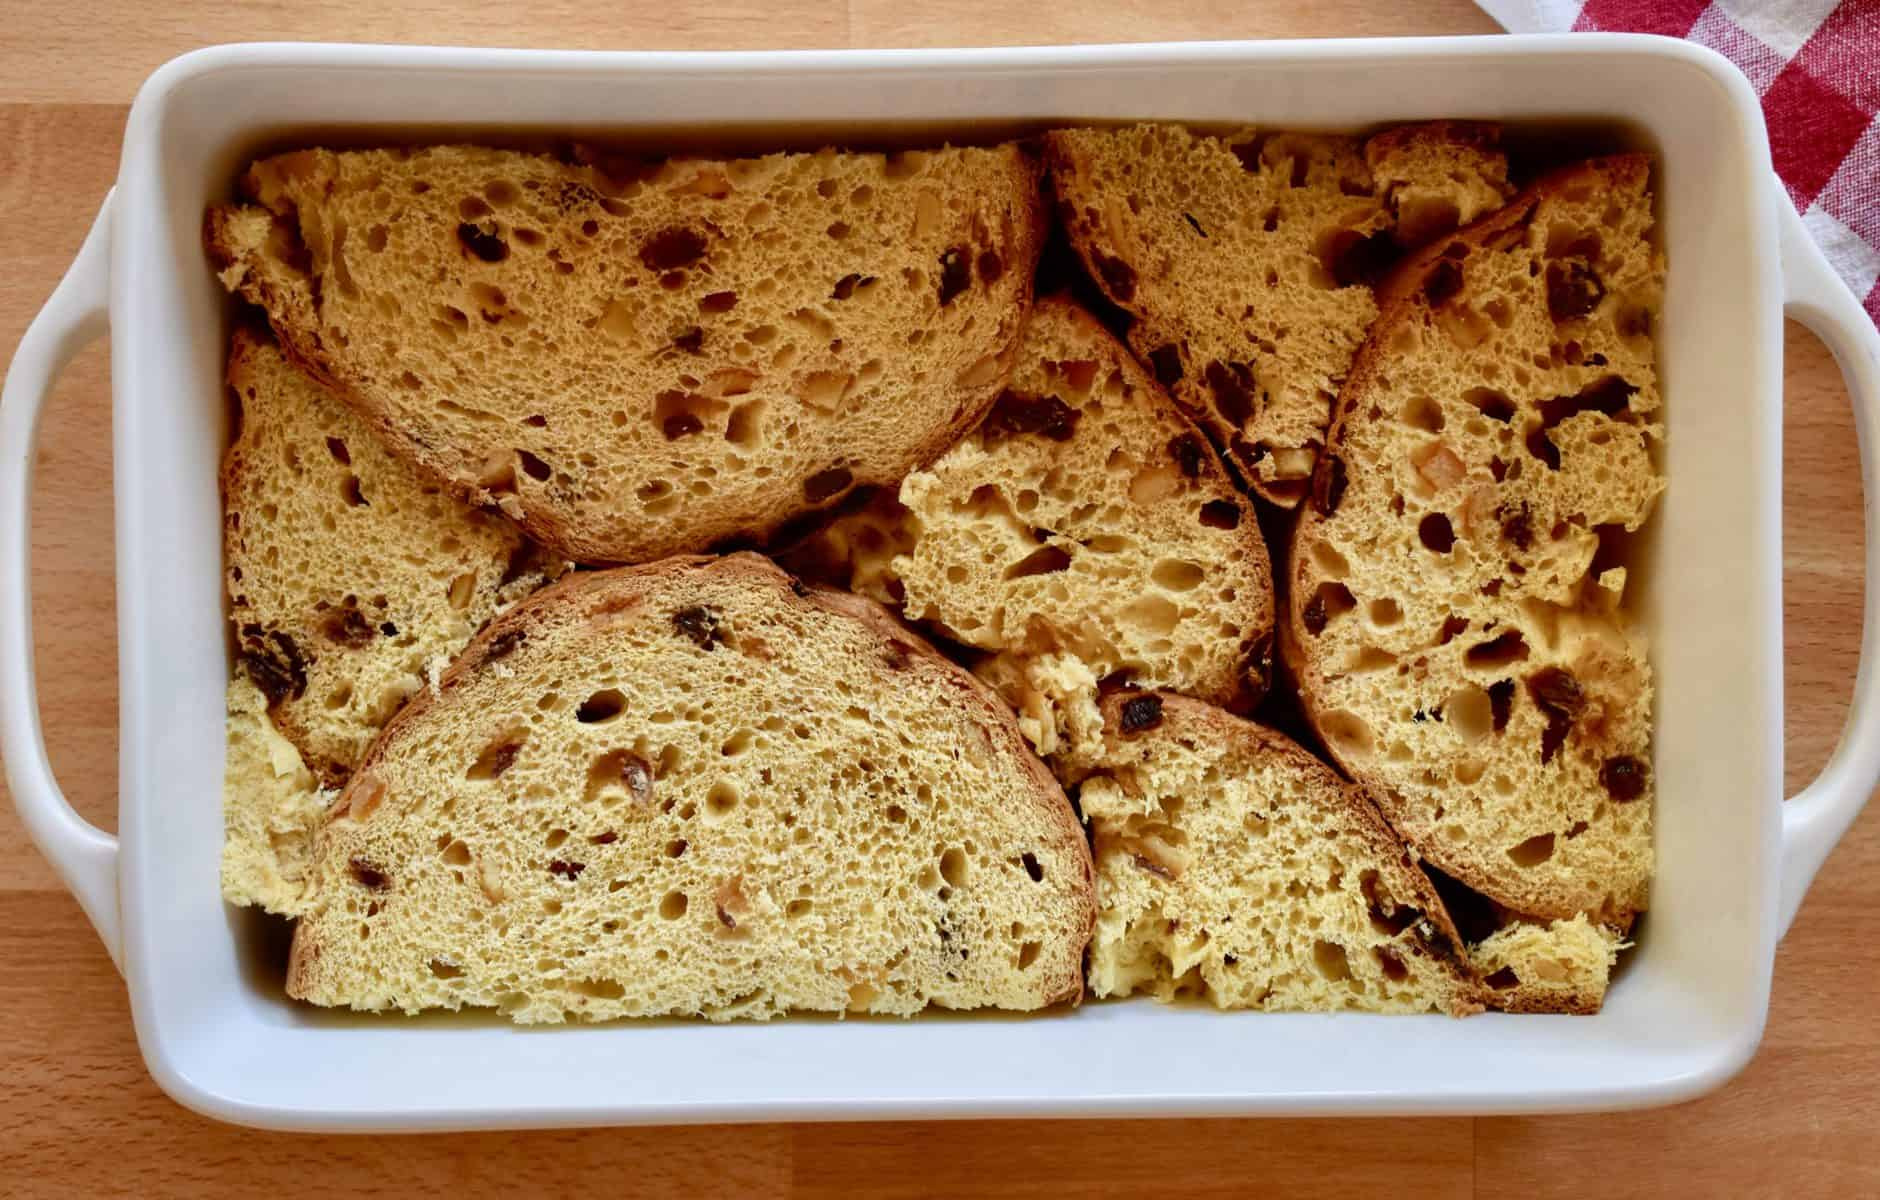 slices of panettone in a white baking dish.